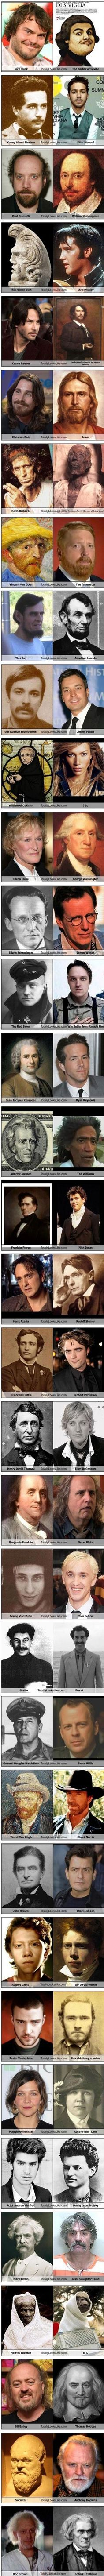 Historical celebrity look-alikes. Whoa!